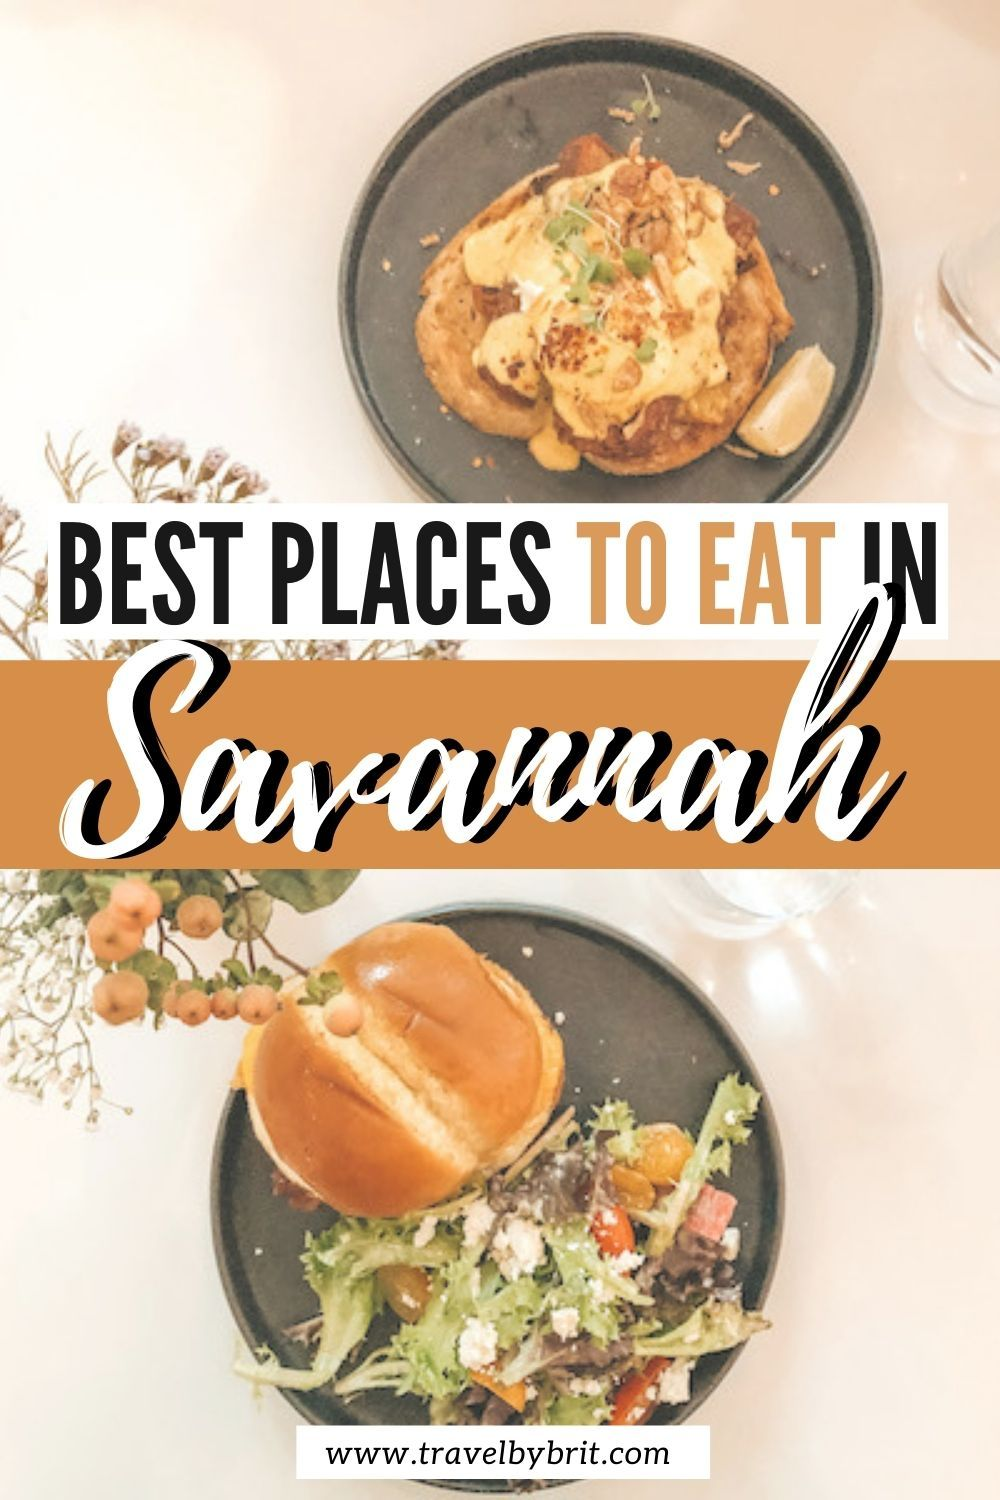 Savannah Food Guide Where To Eat In Savannah Ga In 2021 Food Guide Eat Best Places To Eat